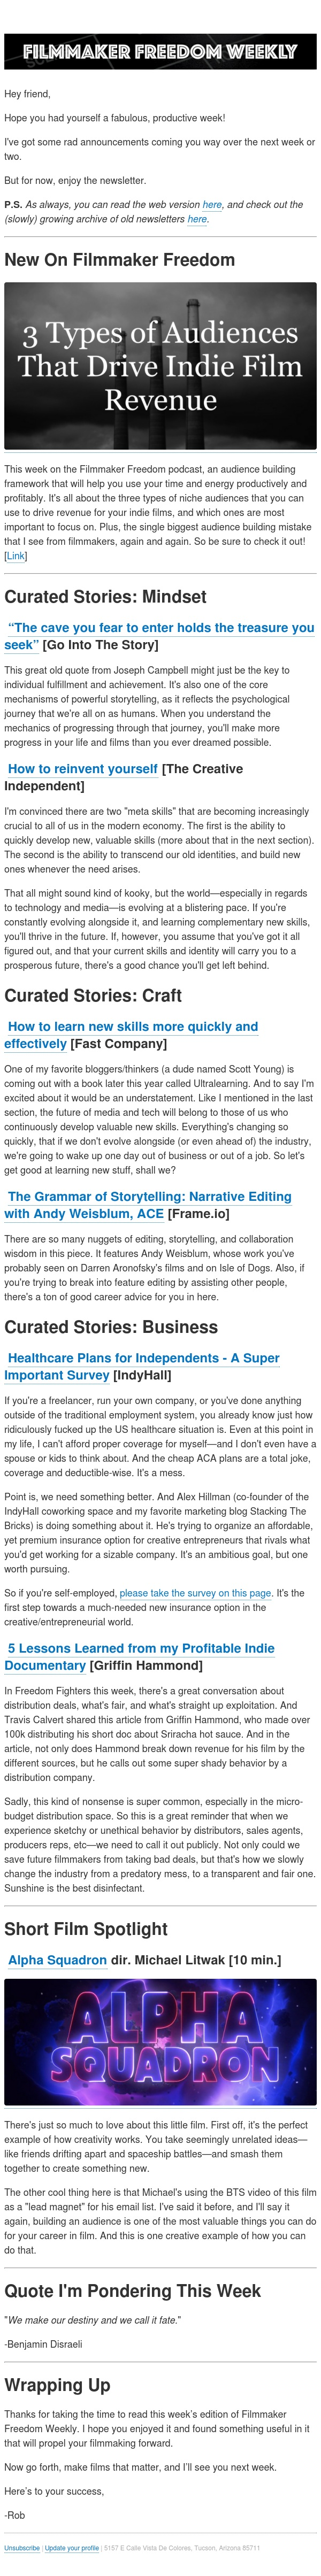 [Newsletter] Lessons learned from a profitable short doc